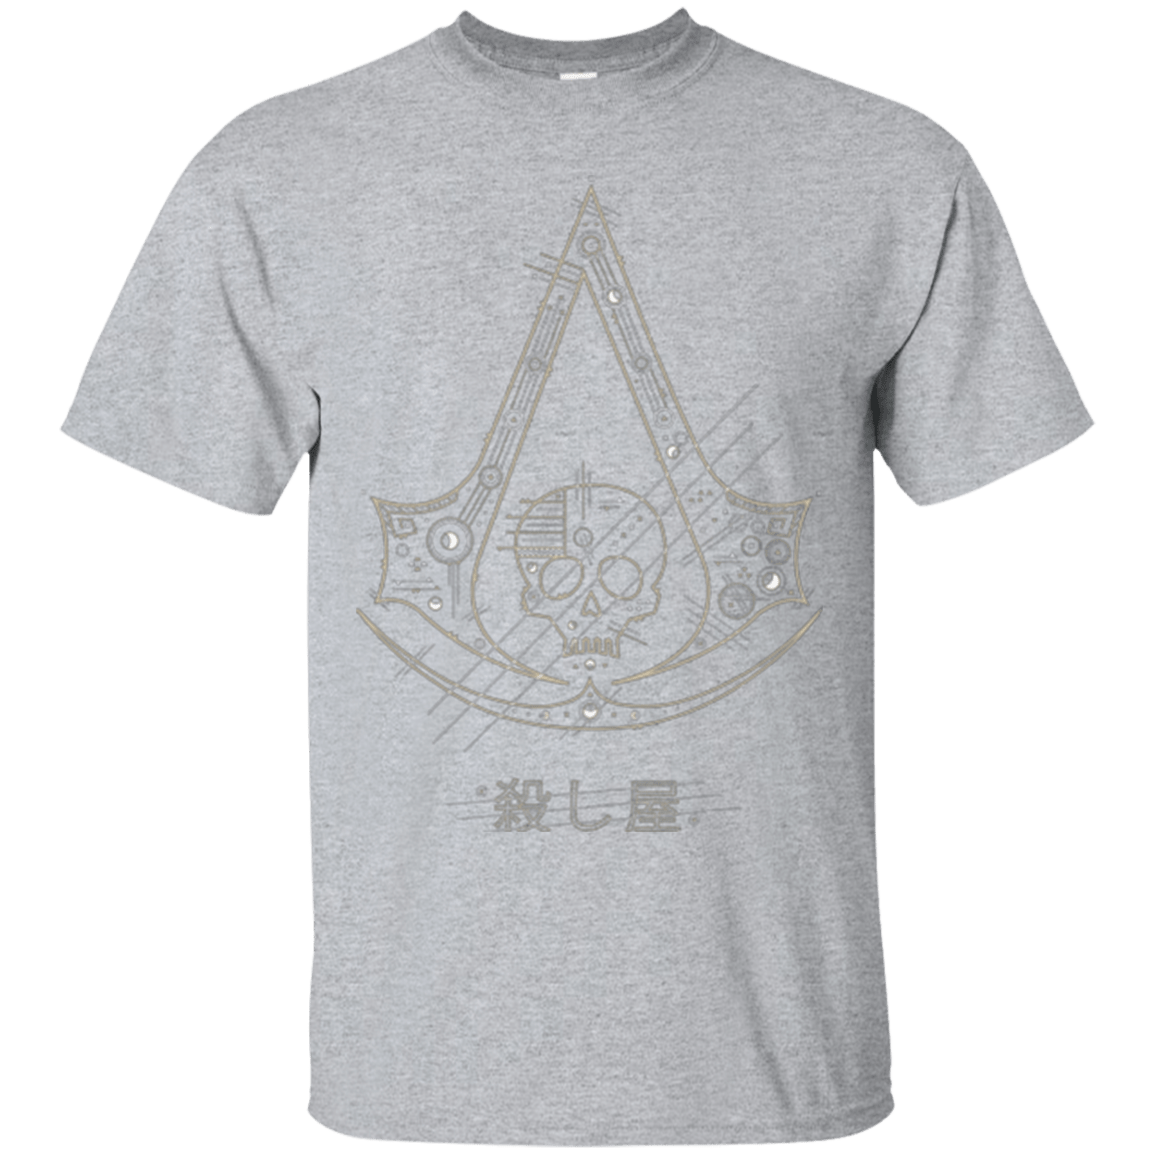 T-Shirts Sport Grey / Small Tech Creed T-Shirt